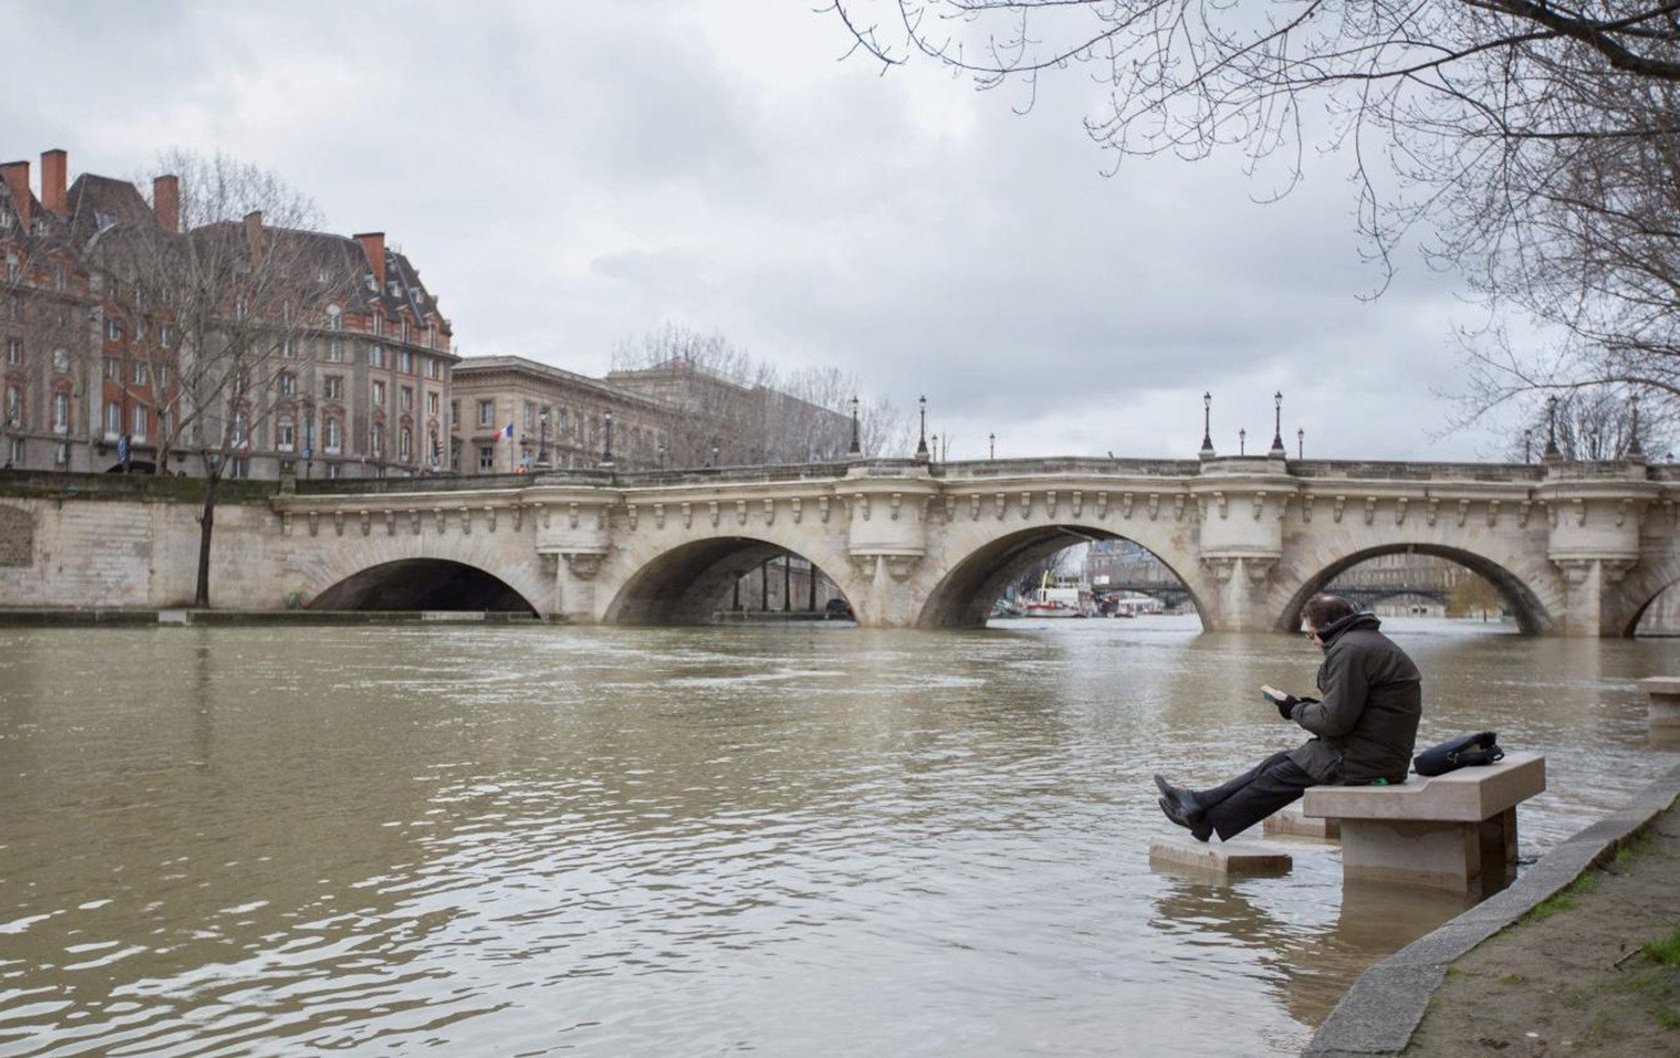 Amazing Video of Paris's River Seine Rising!